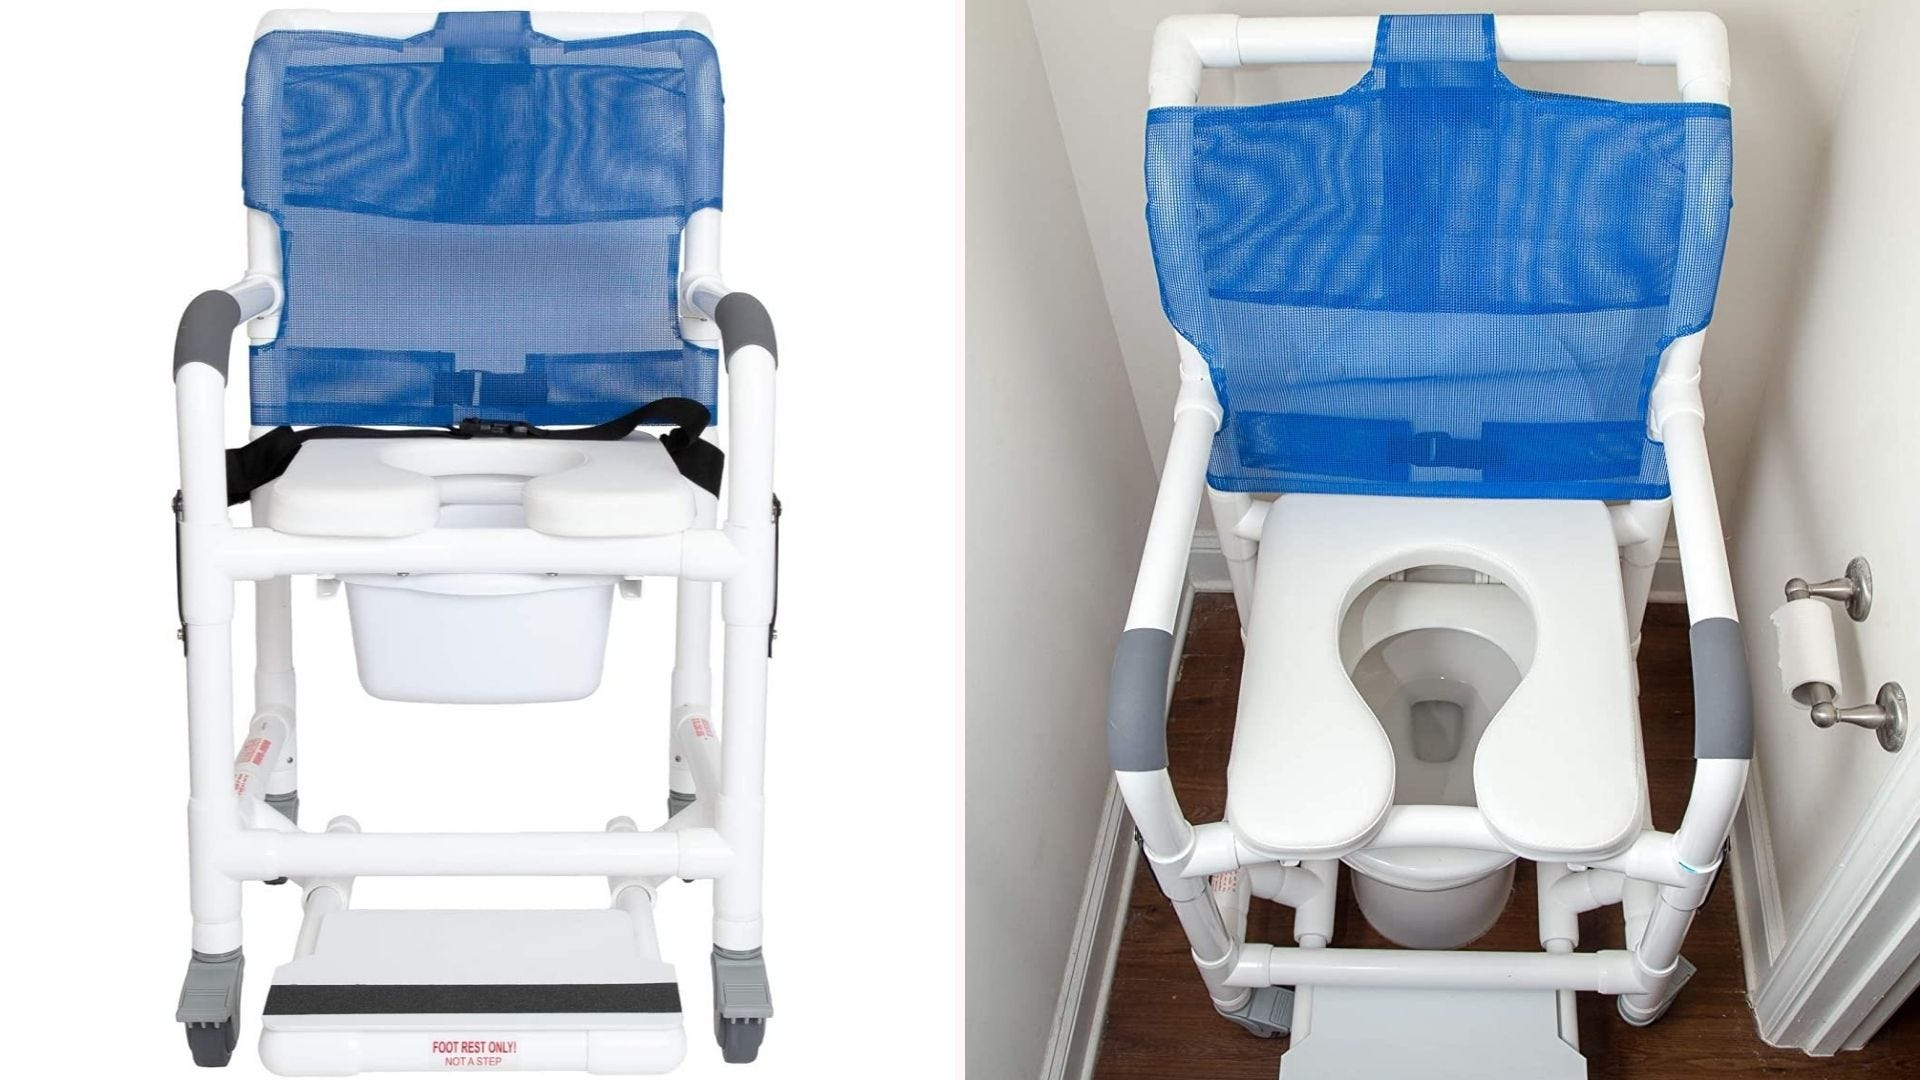 On the left, 20.5-inch tall shower chair that features PVC pipe construction with a blue mesh backing, a removable commode pail, and four-wheel movement. On the right, the chair sits just above a toilet, demonstrating its multifaceted structure and ability to fit into narrow restrooms.